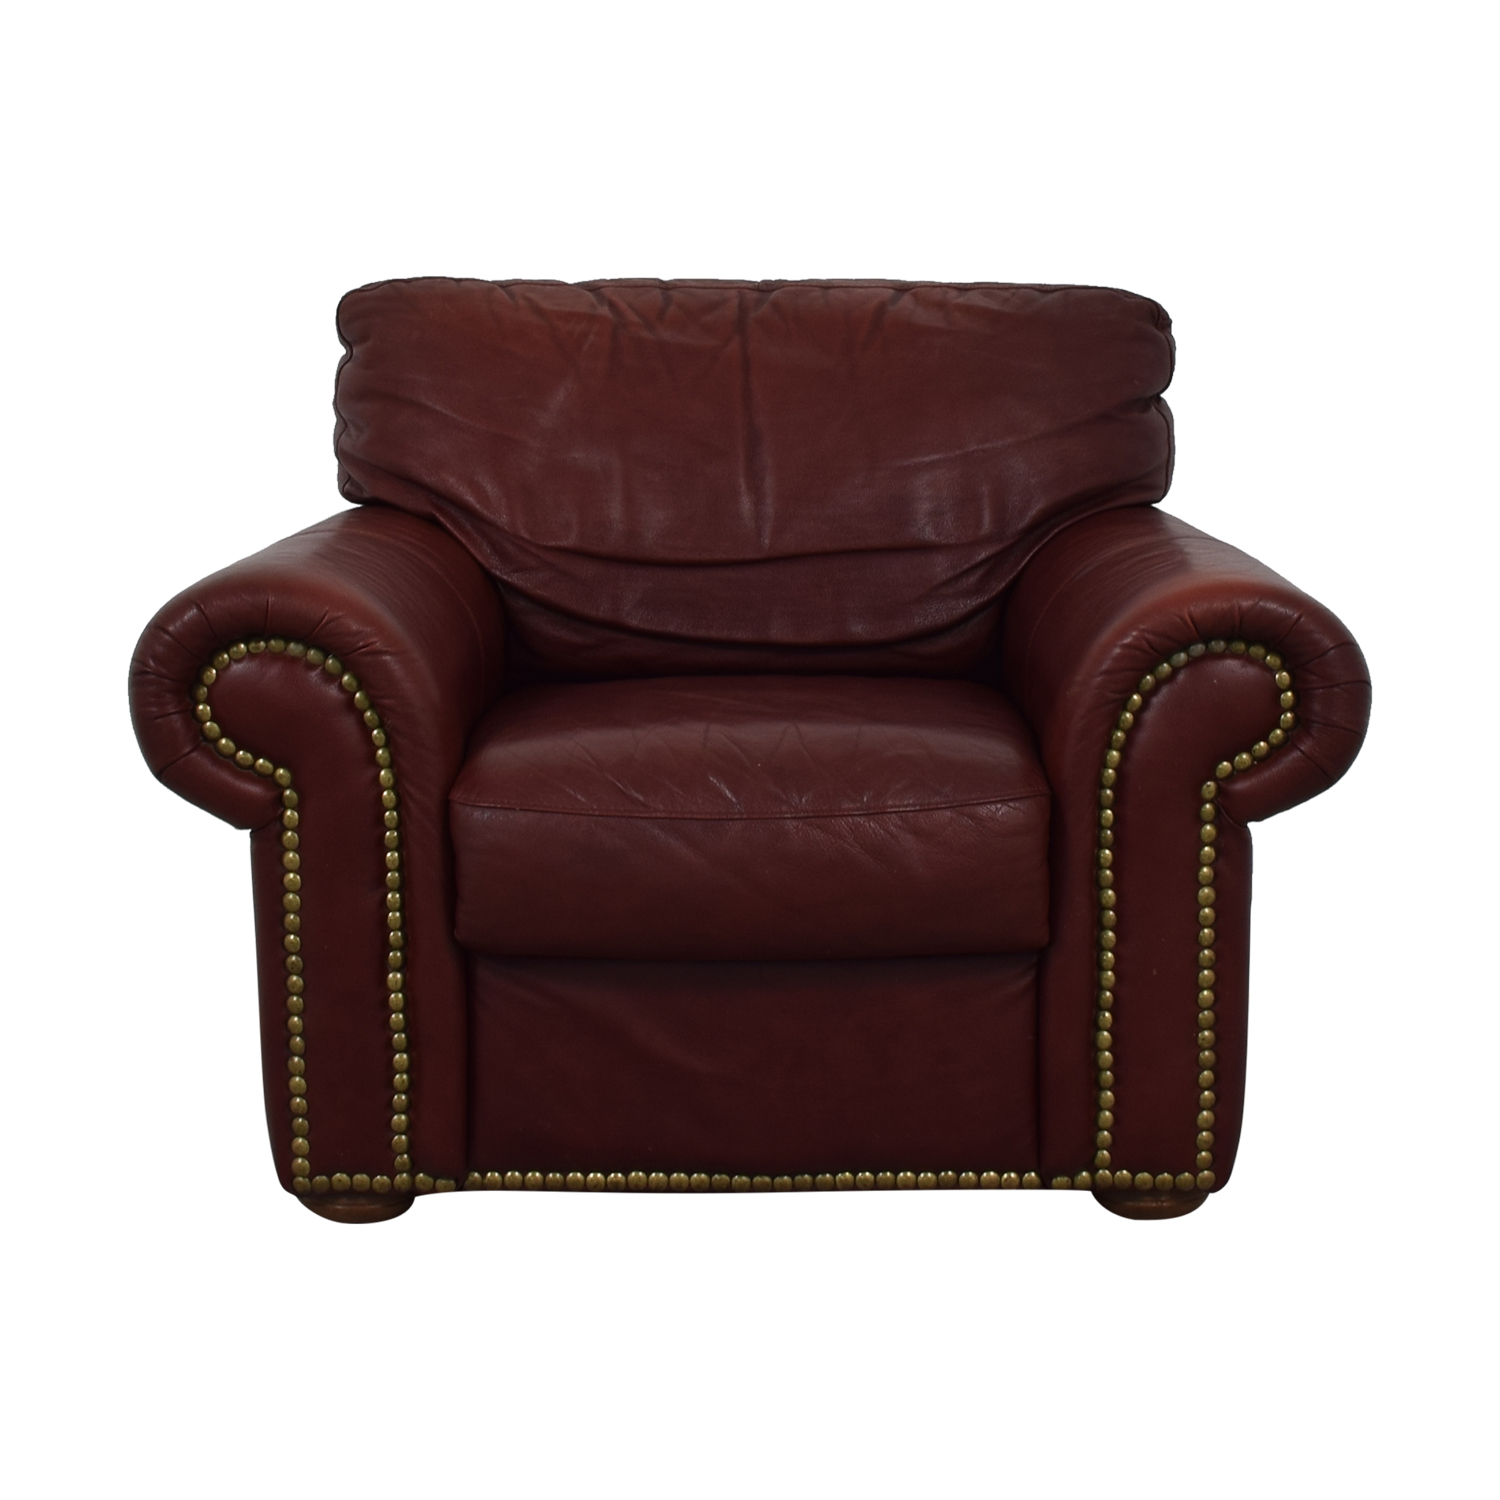 Macy's Macy's Burgundy Nail Head Accent Chair coupon